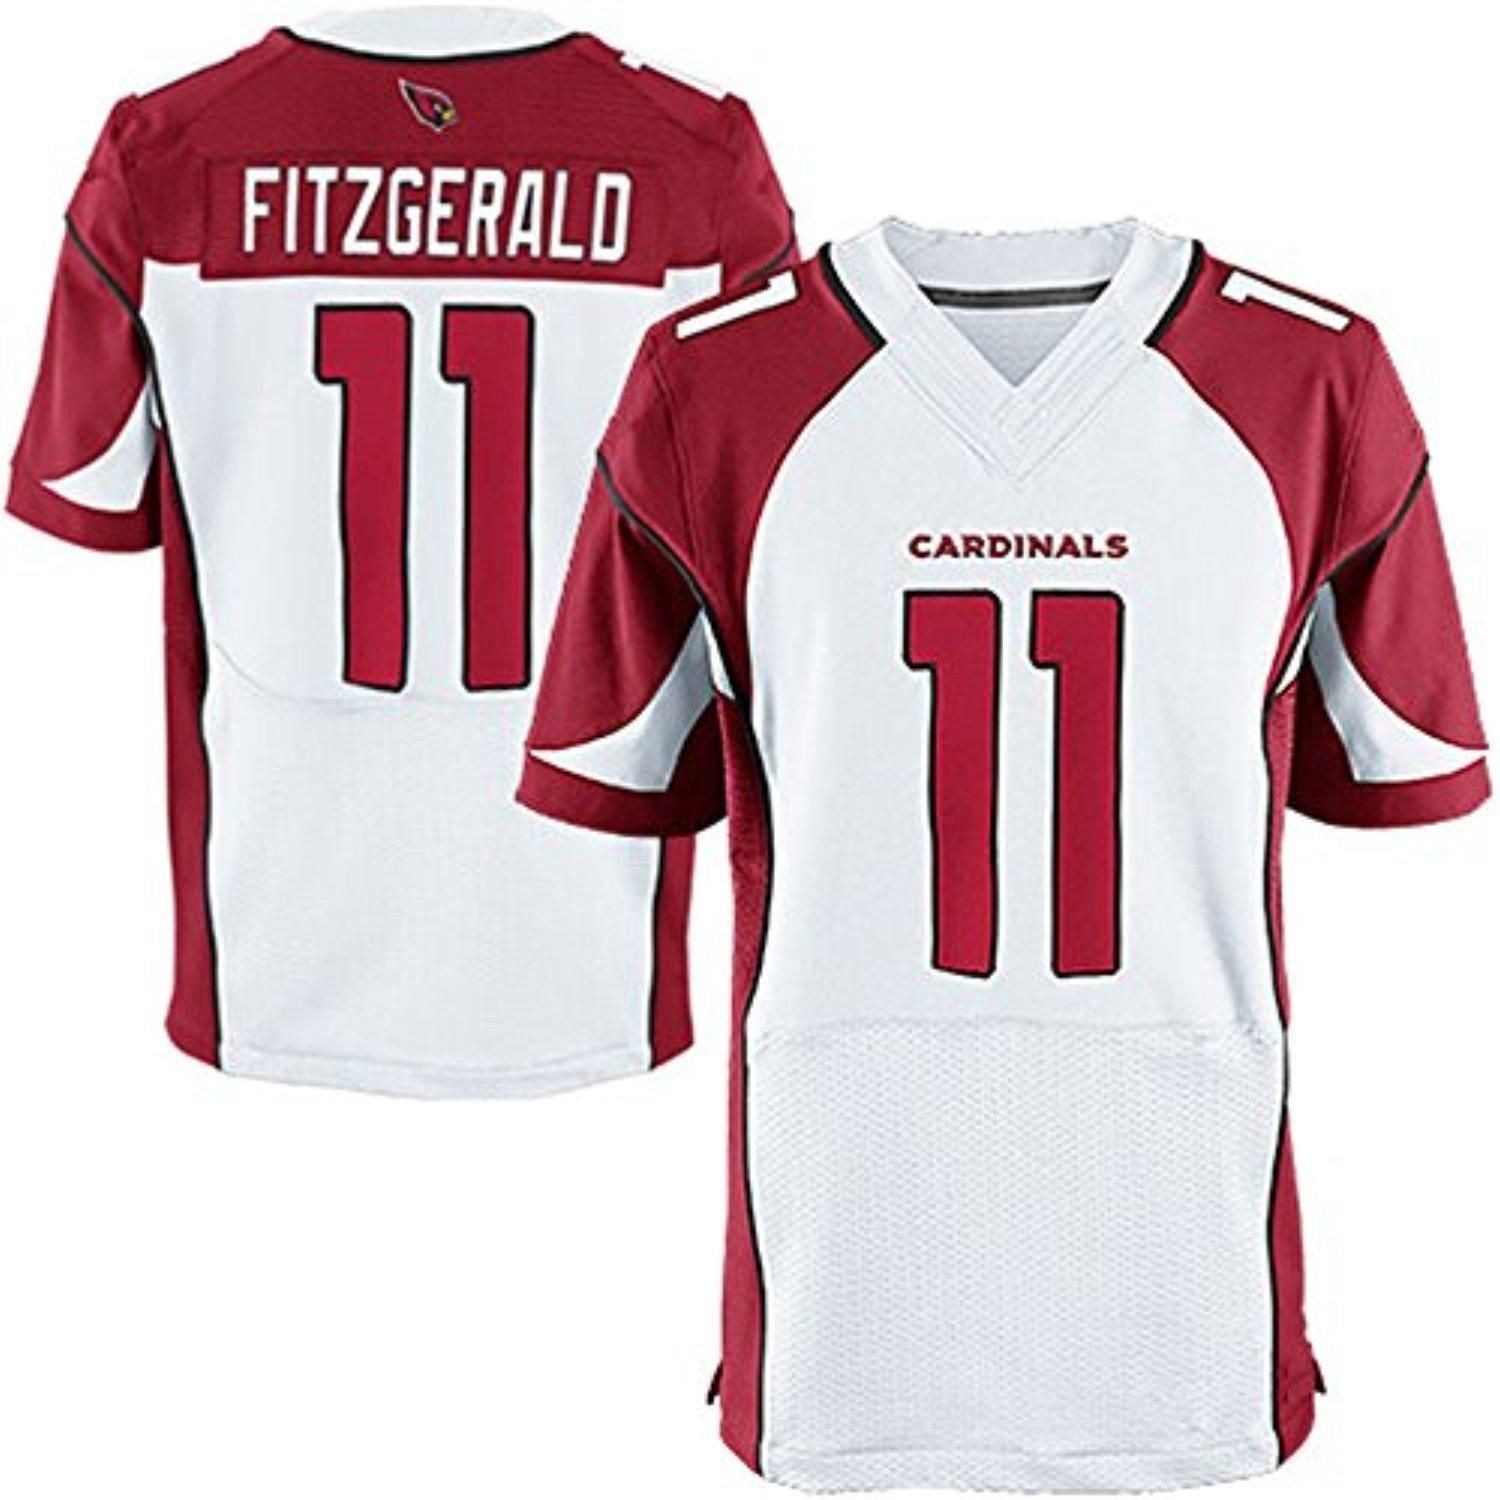 e11ba82a1 ... nike nfl mens limited color rush jersey 9c9e9 5495d  reduced xixi88  adult game team sports jerseys arizona cardinals 11 larry fitzgerald red  and white 2